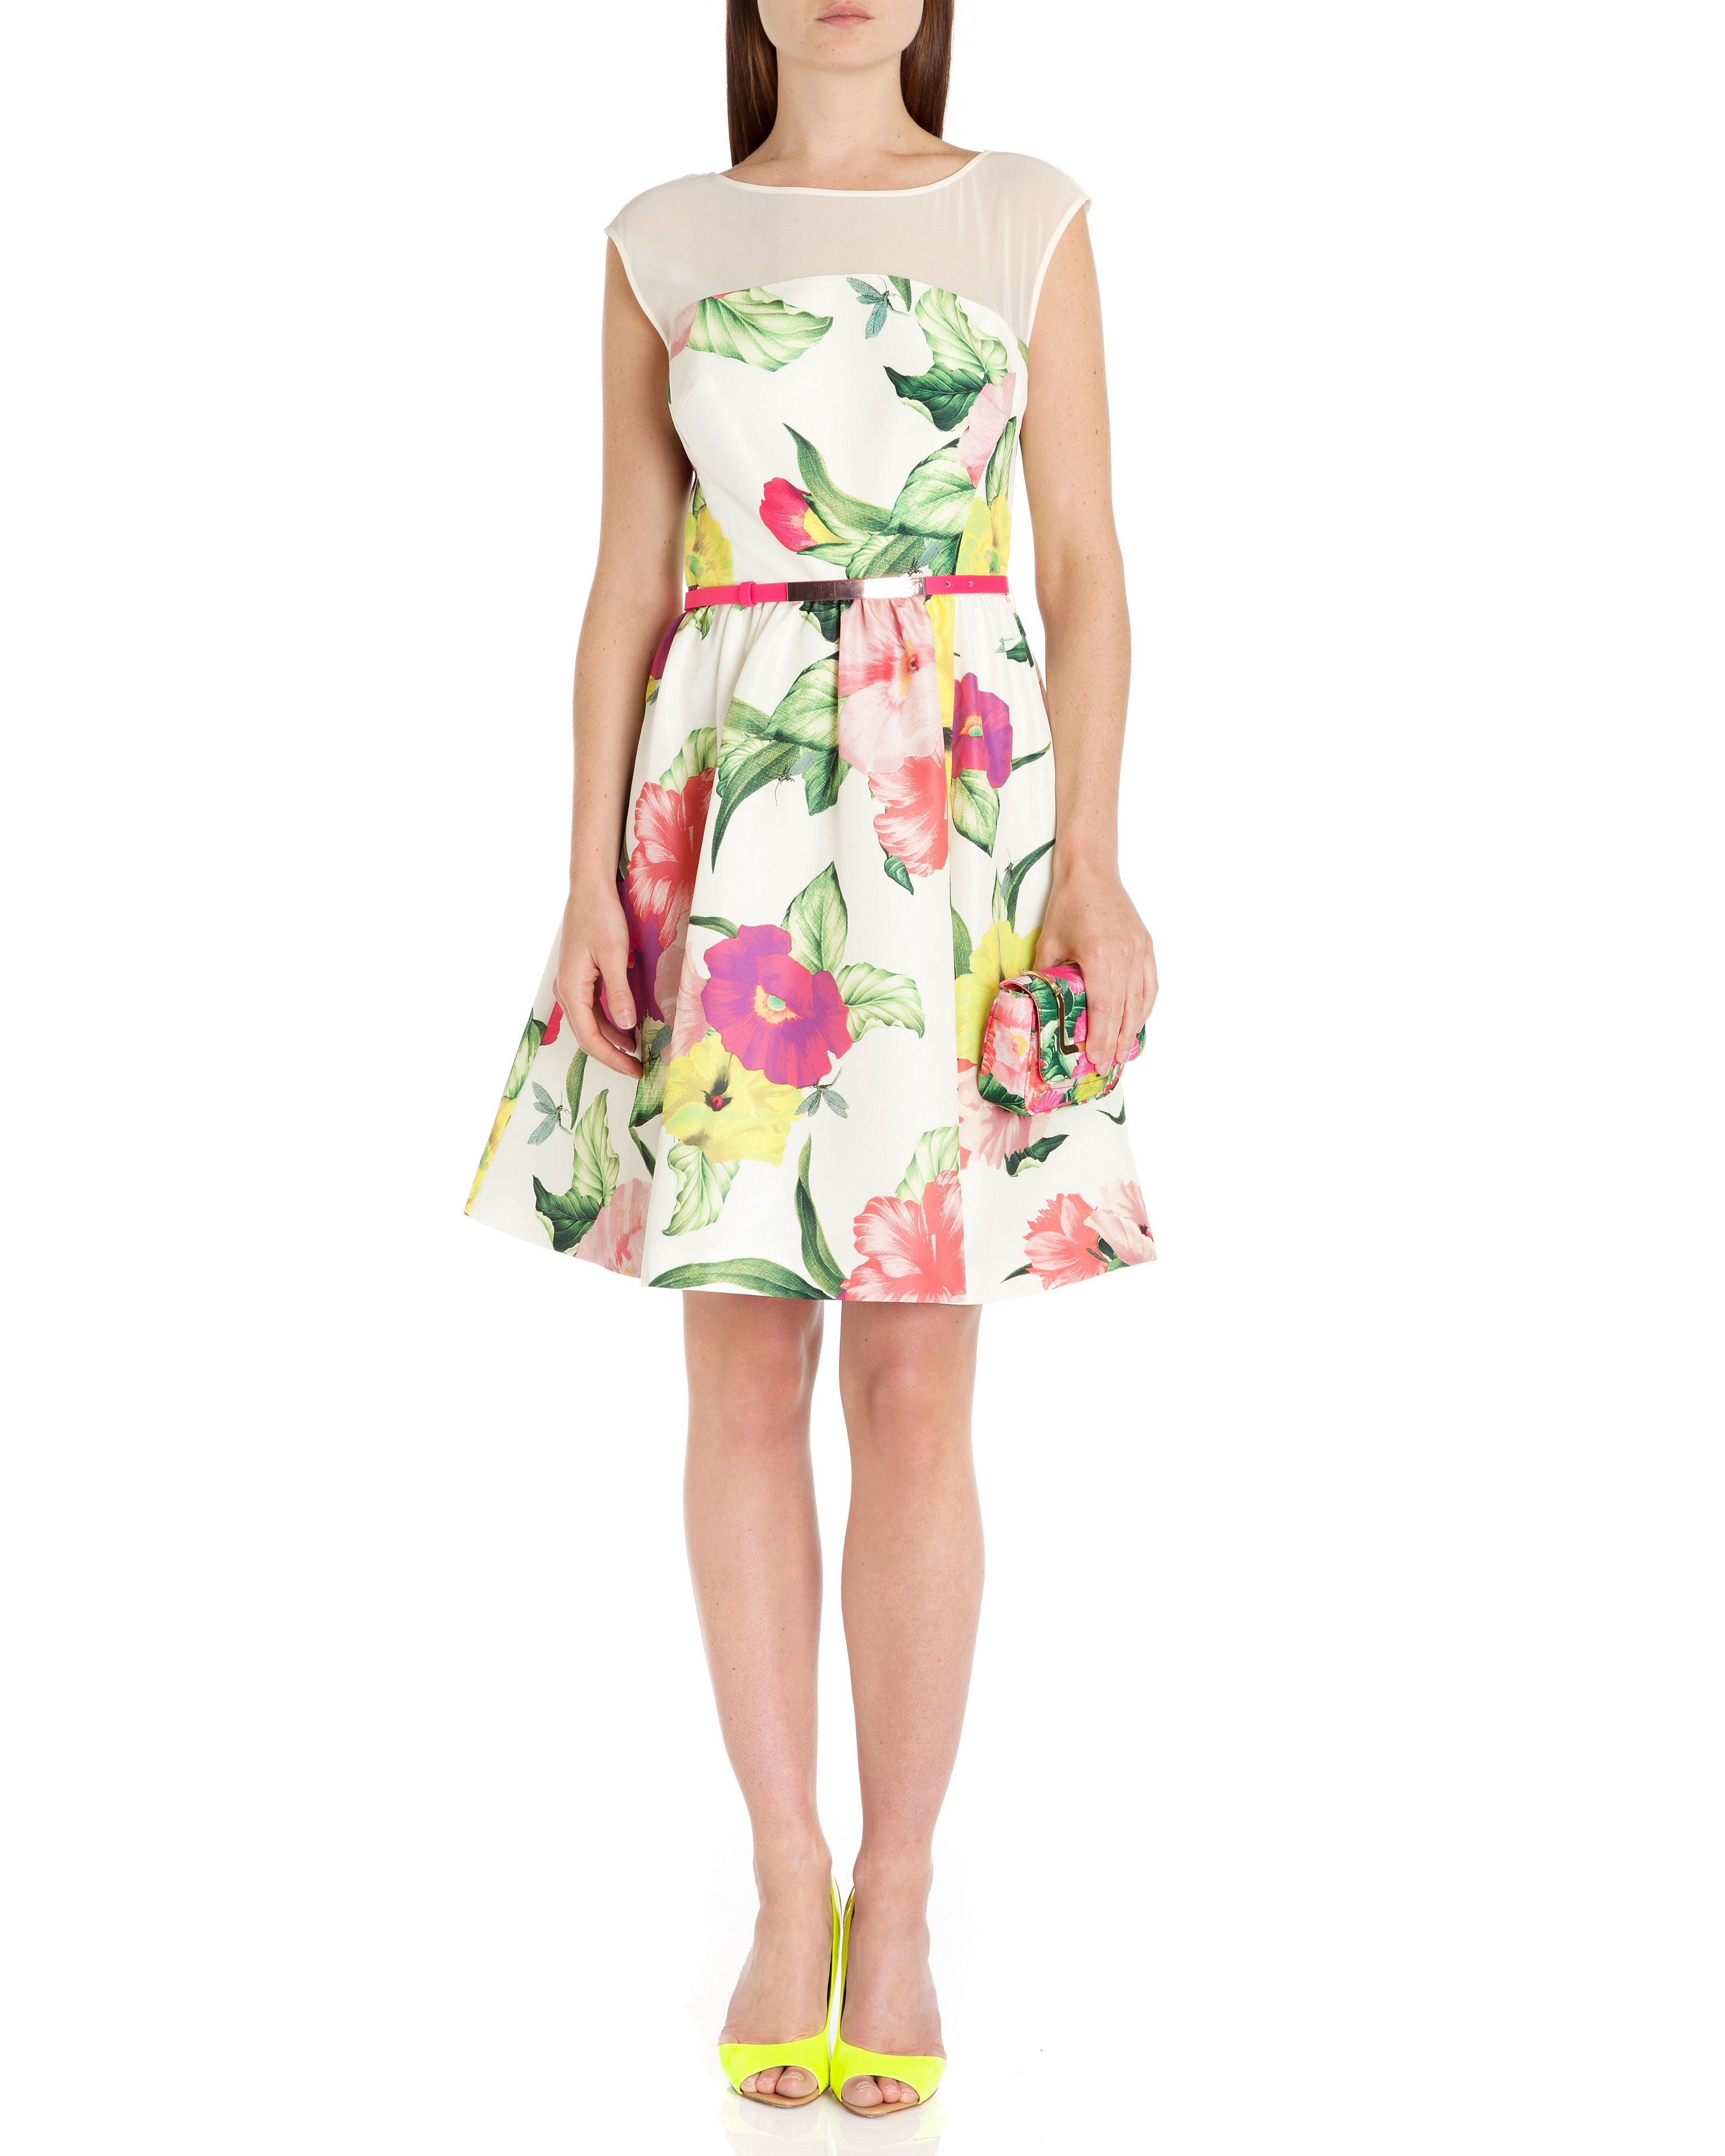 Iberis floral printed dress